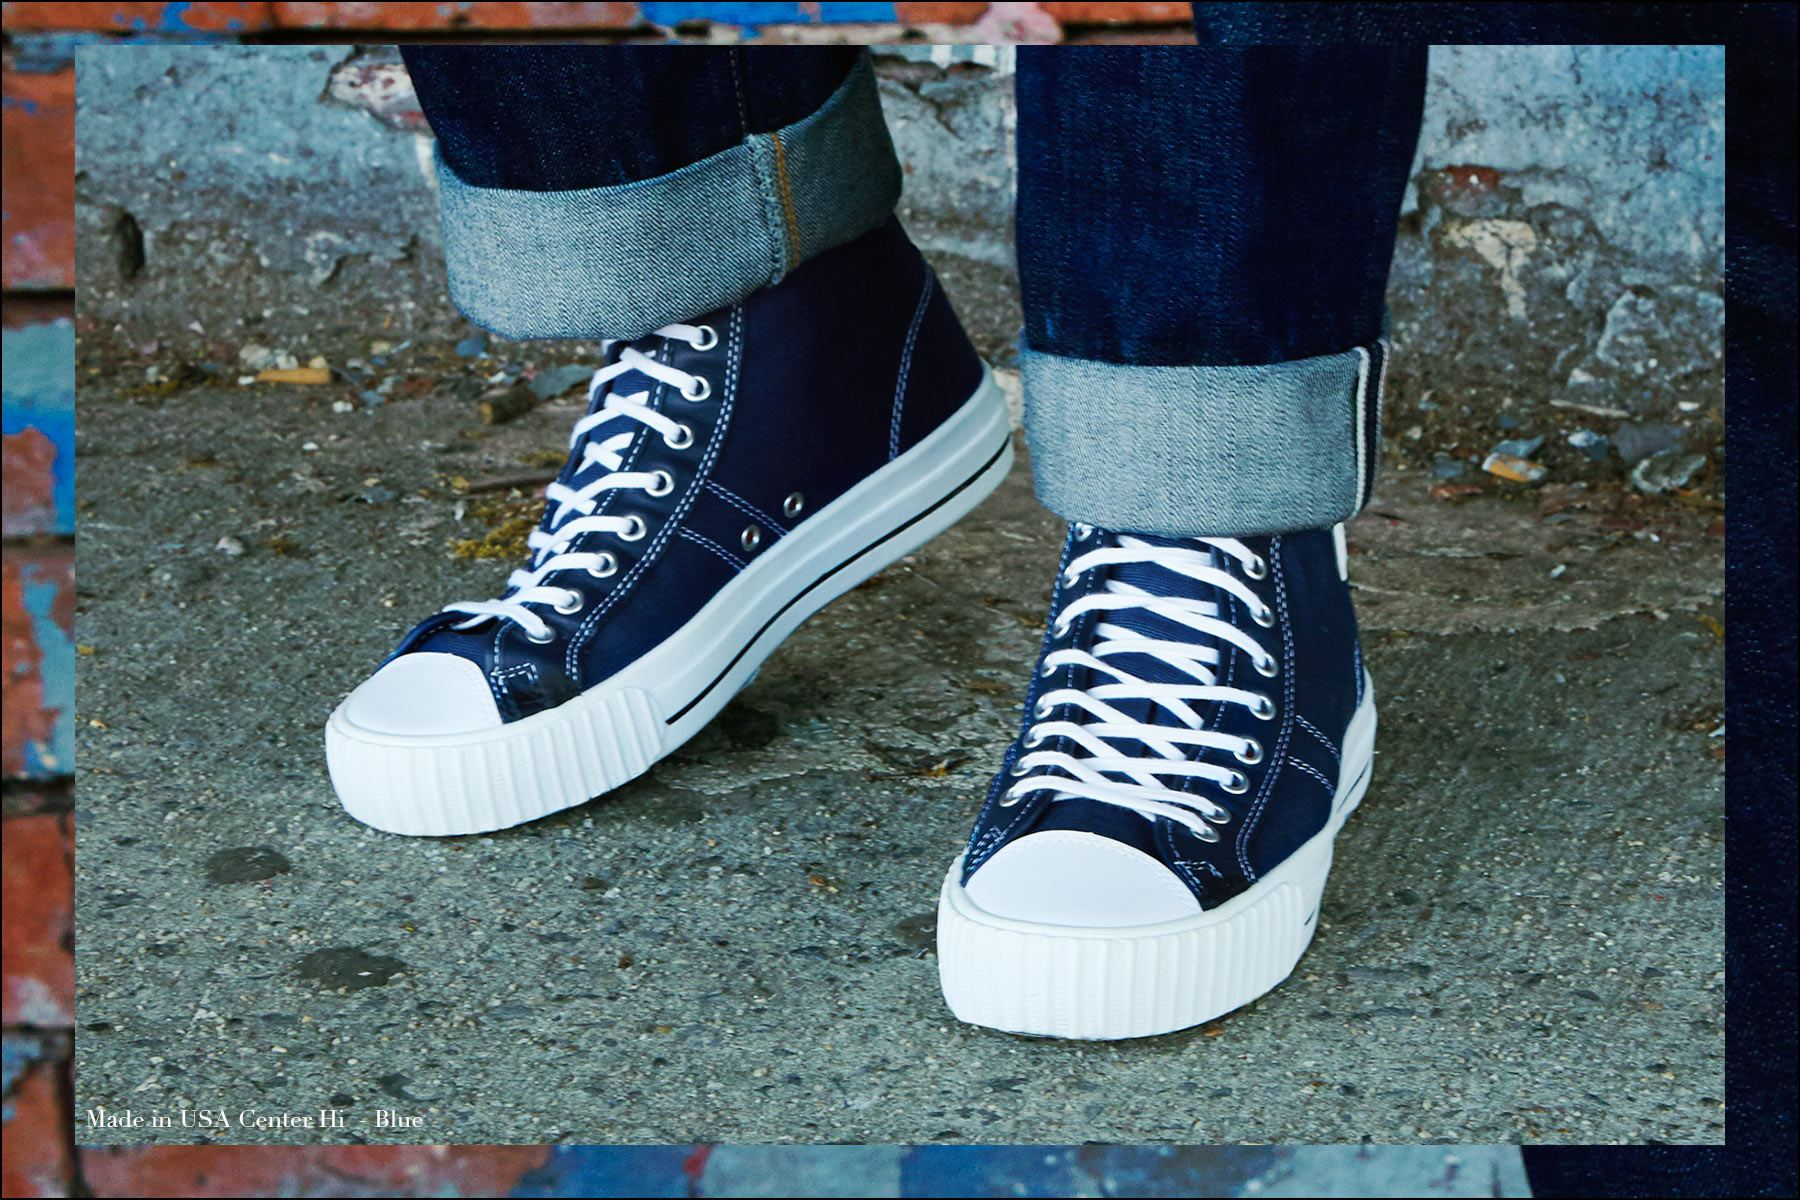 Close-up shot of Made in USA sneaker in blue from PF Flyers, photographed by Alexander Thompson for Ponyboy magazine NY.